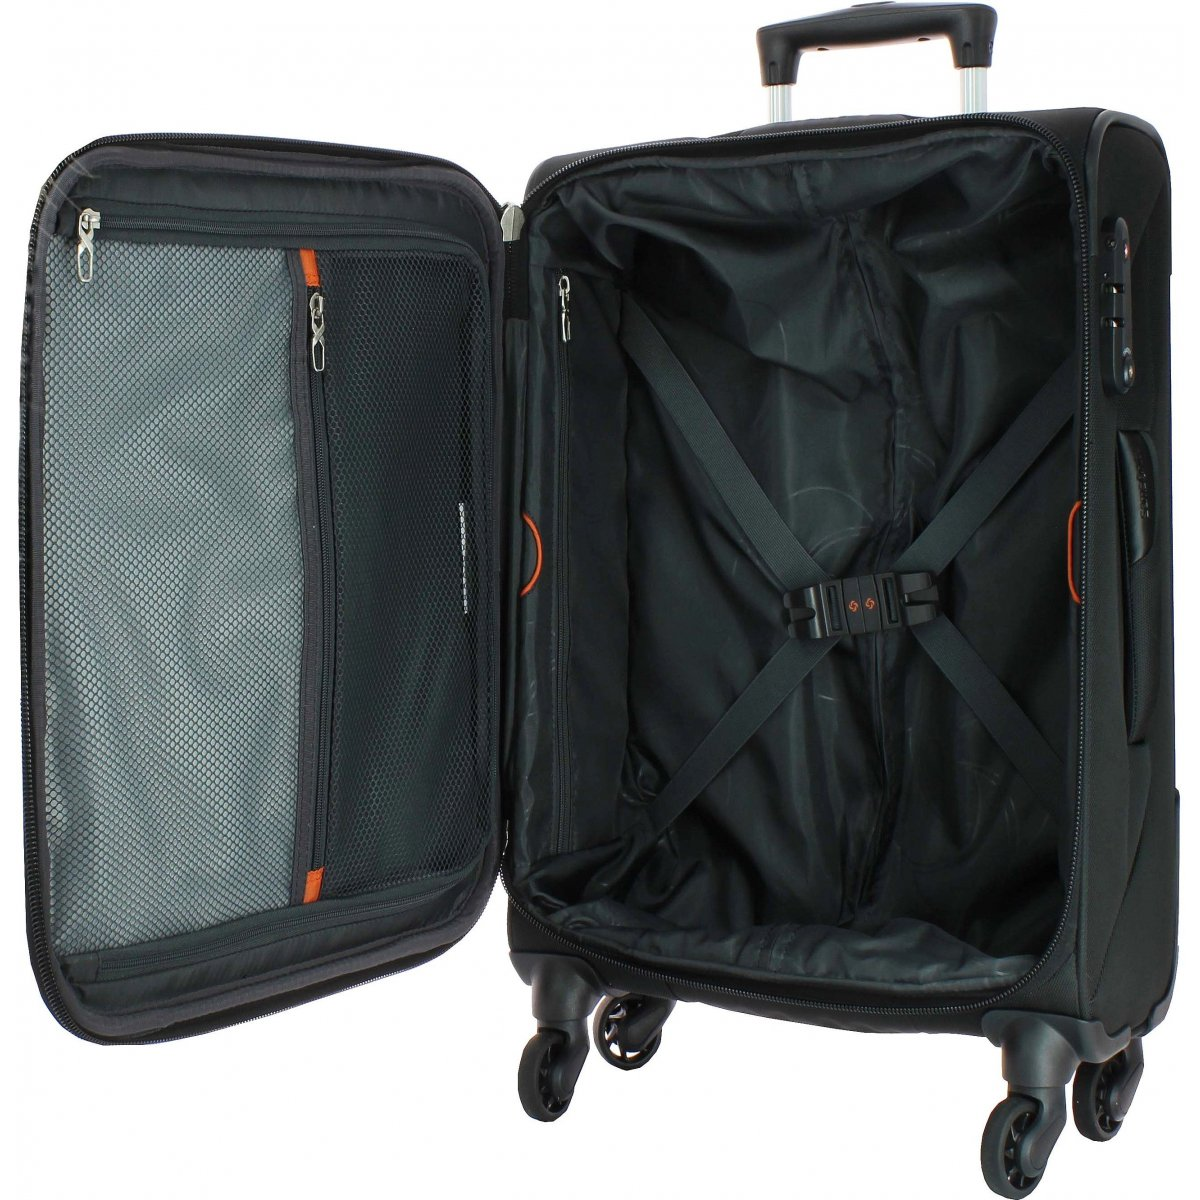 valise samsonite x 39 blade 63cm xblade91 couleur principale noir solde. Black Bedroom Furniture Sets. Home Design Ideas